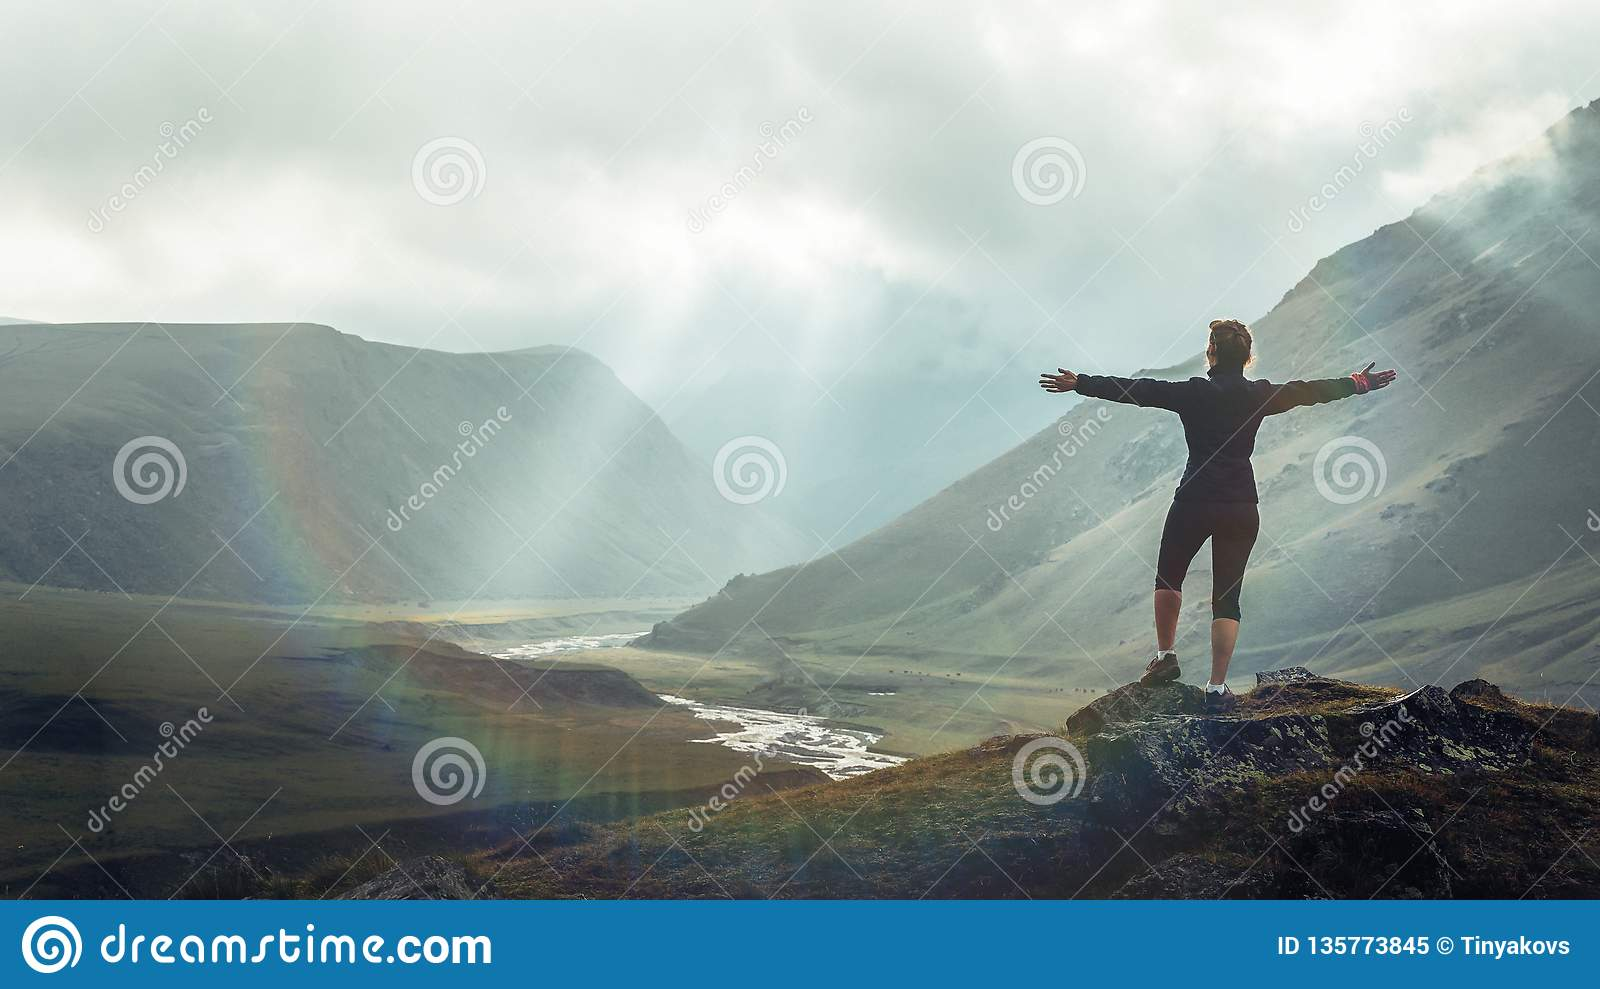 Discovery Travel Destination Concept. Hiker Young Woman With Backpack Rises To The Mountain Top Against Backdrop Of Sunset, Rear